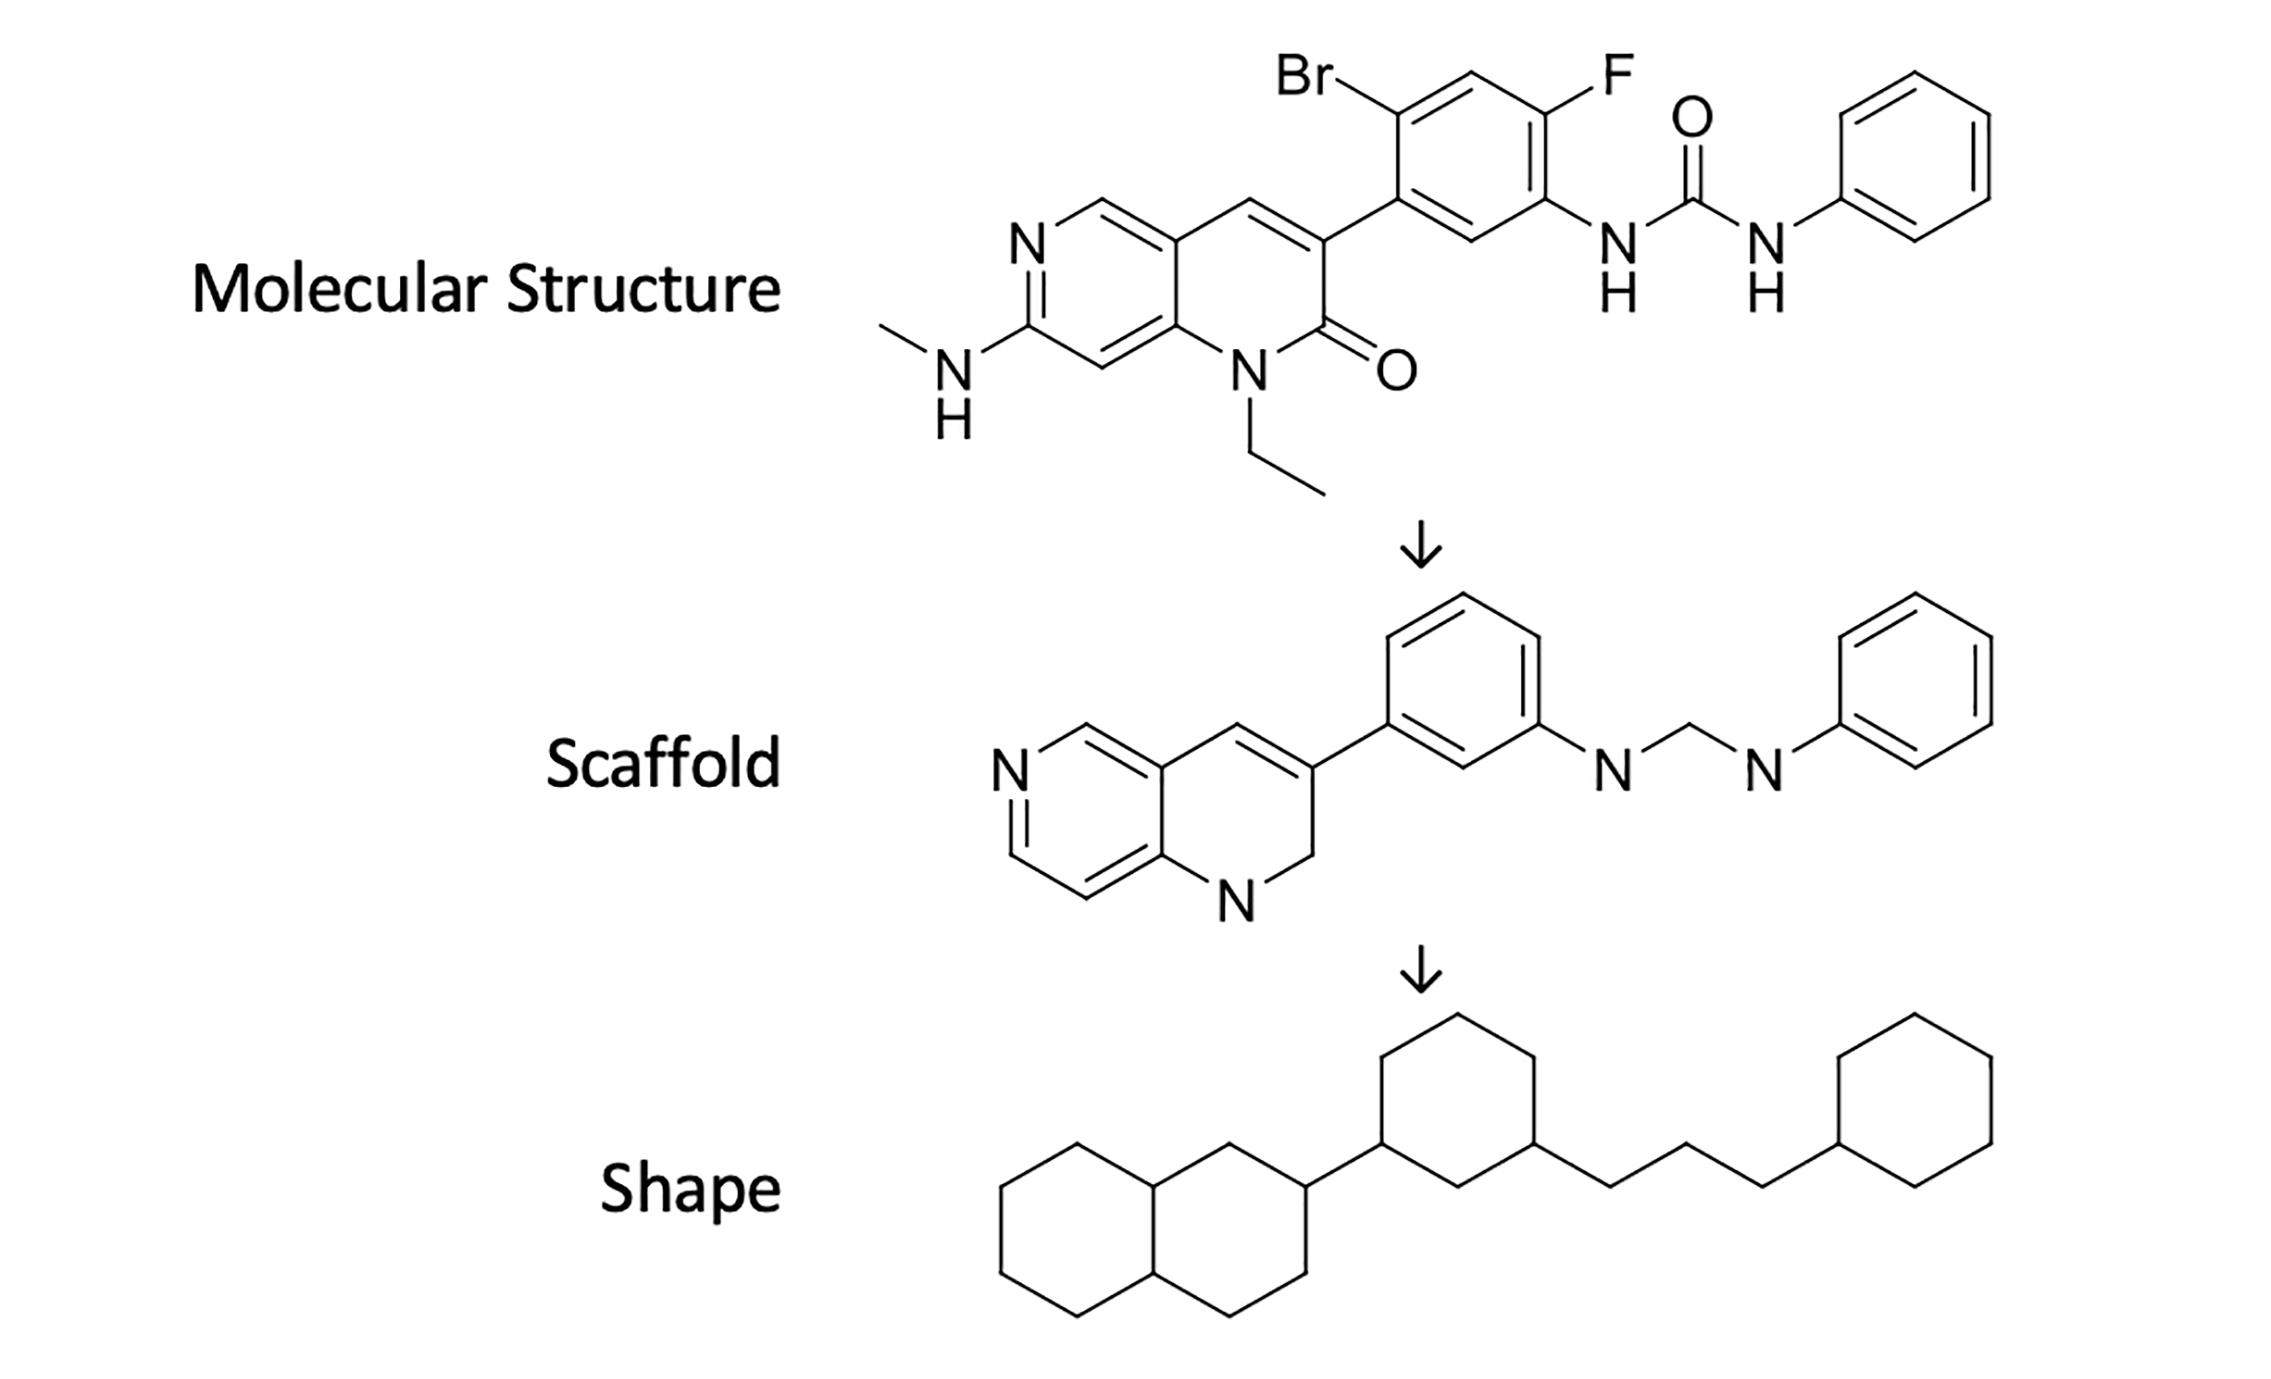 Example definition of drug shapes and scaffolds